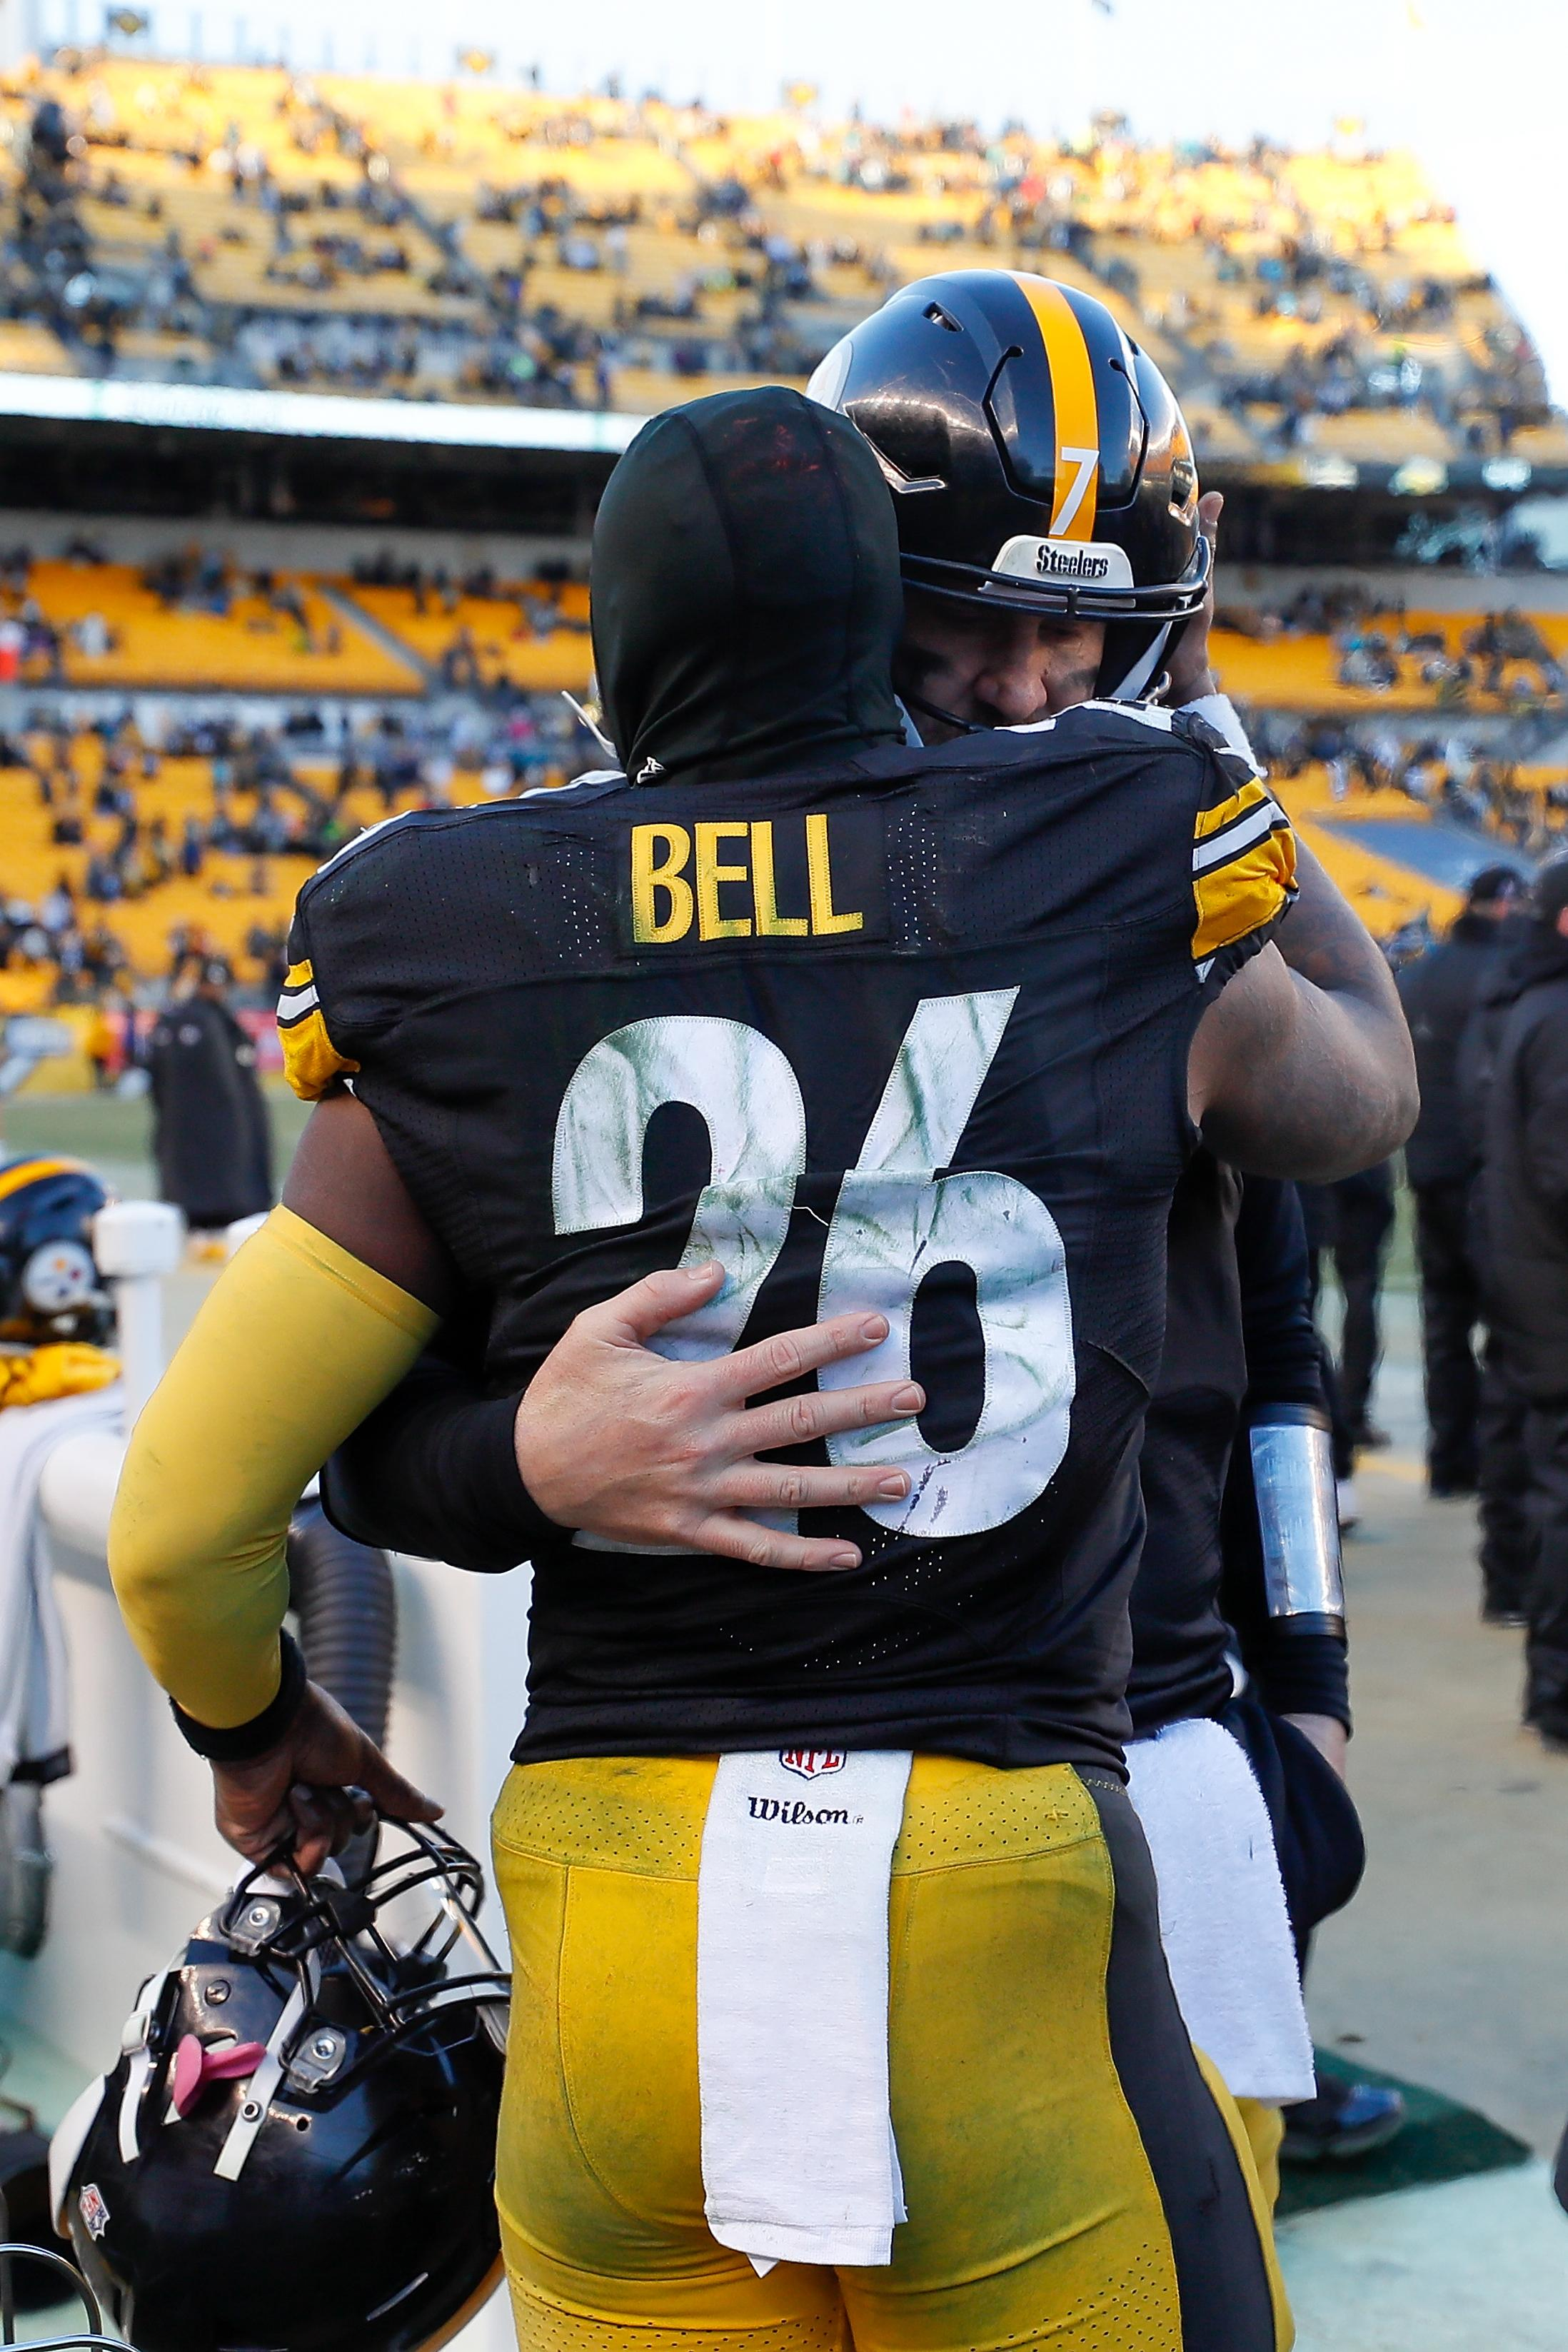 The 10 most interesting players of the NFL offseason: Le'Veon Bell keeps spectators guessing